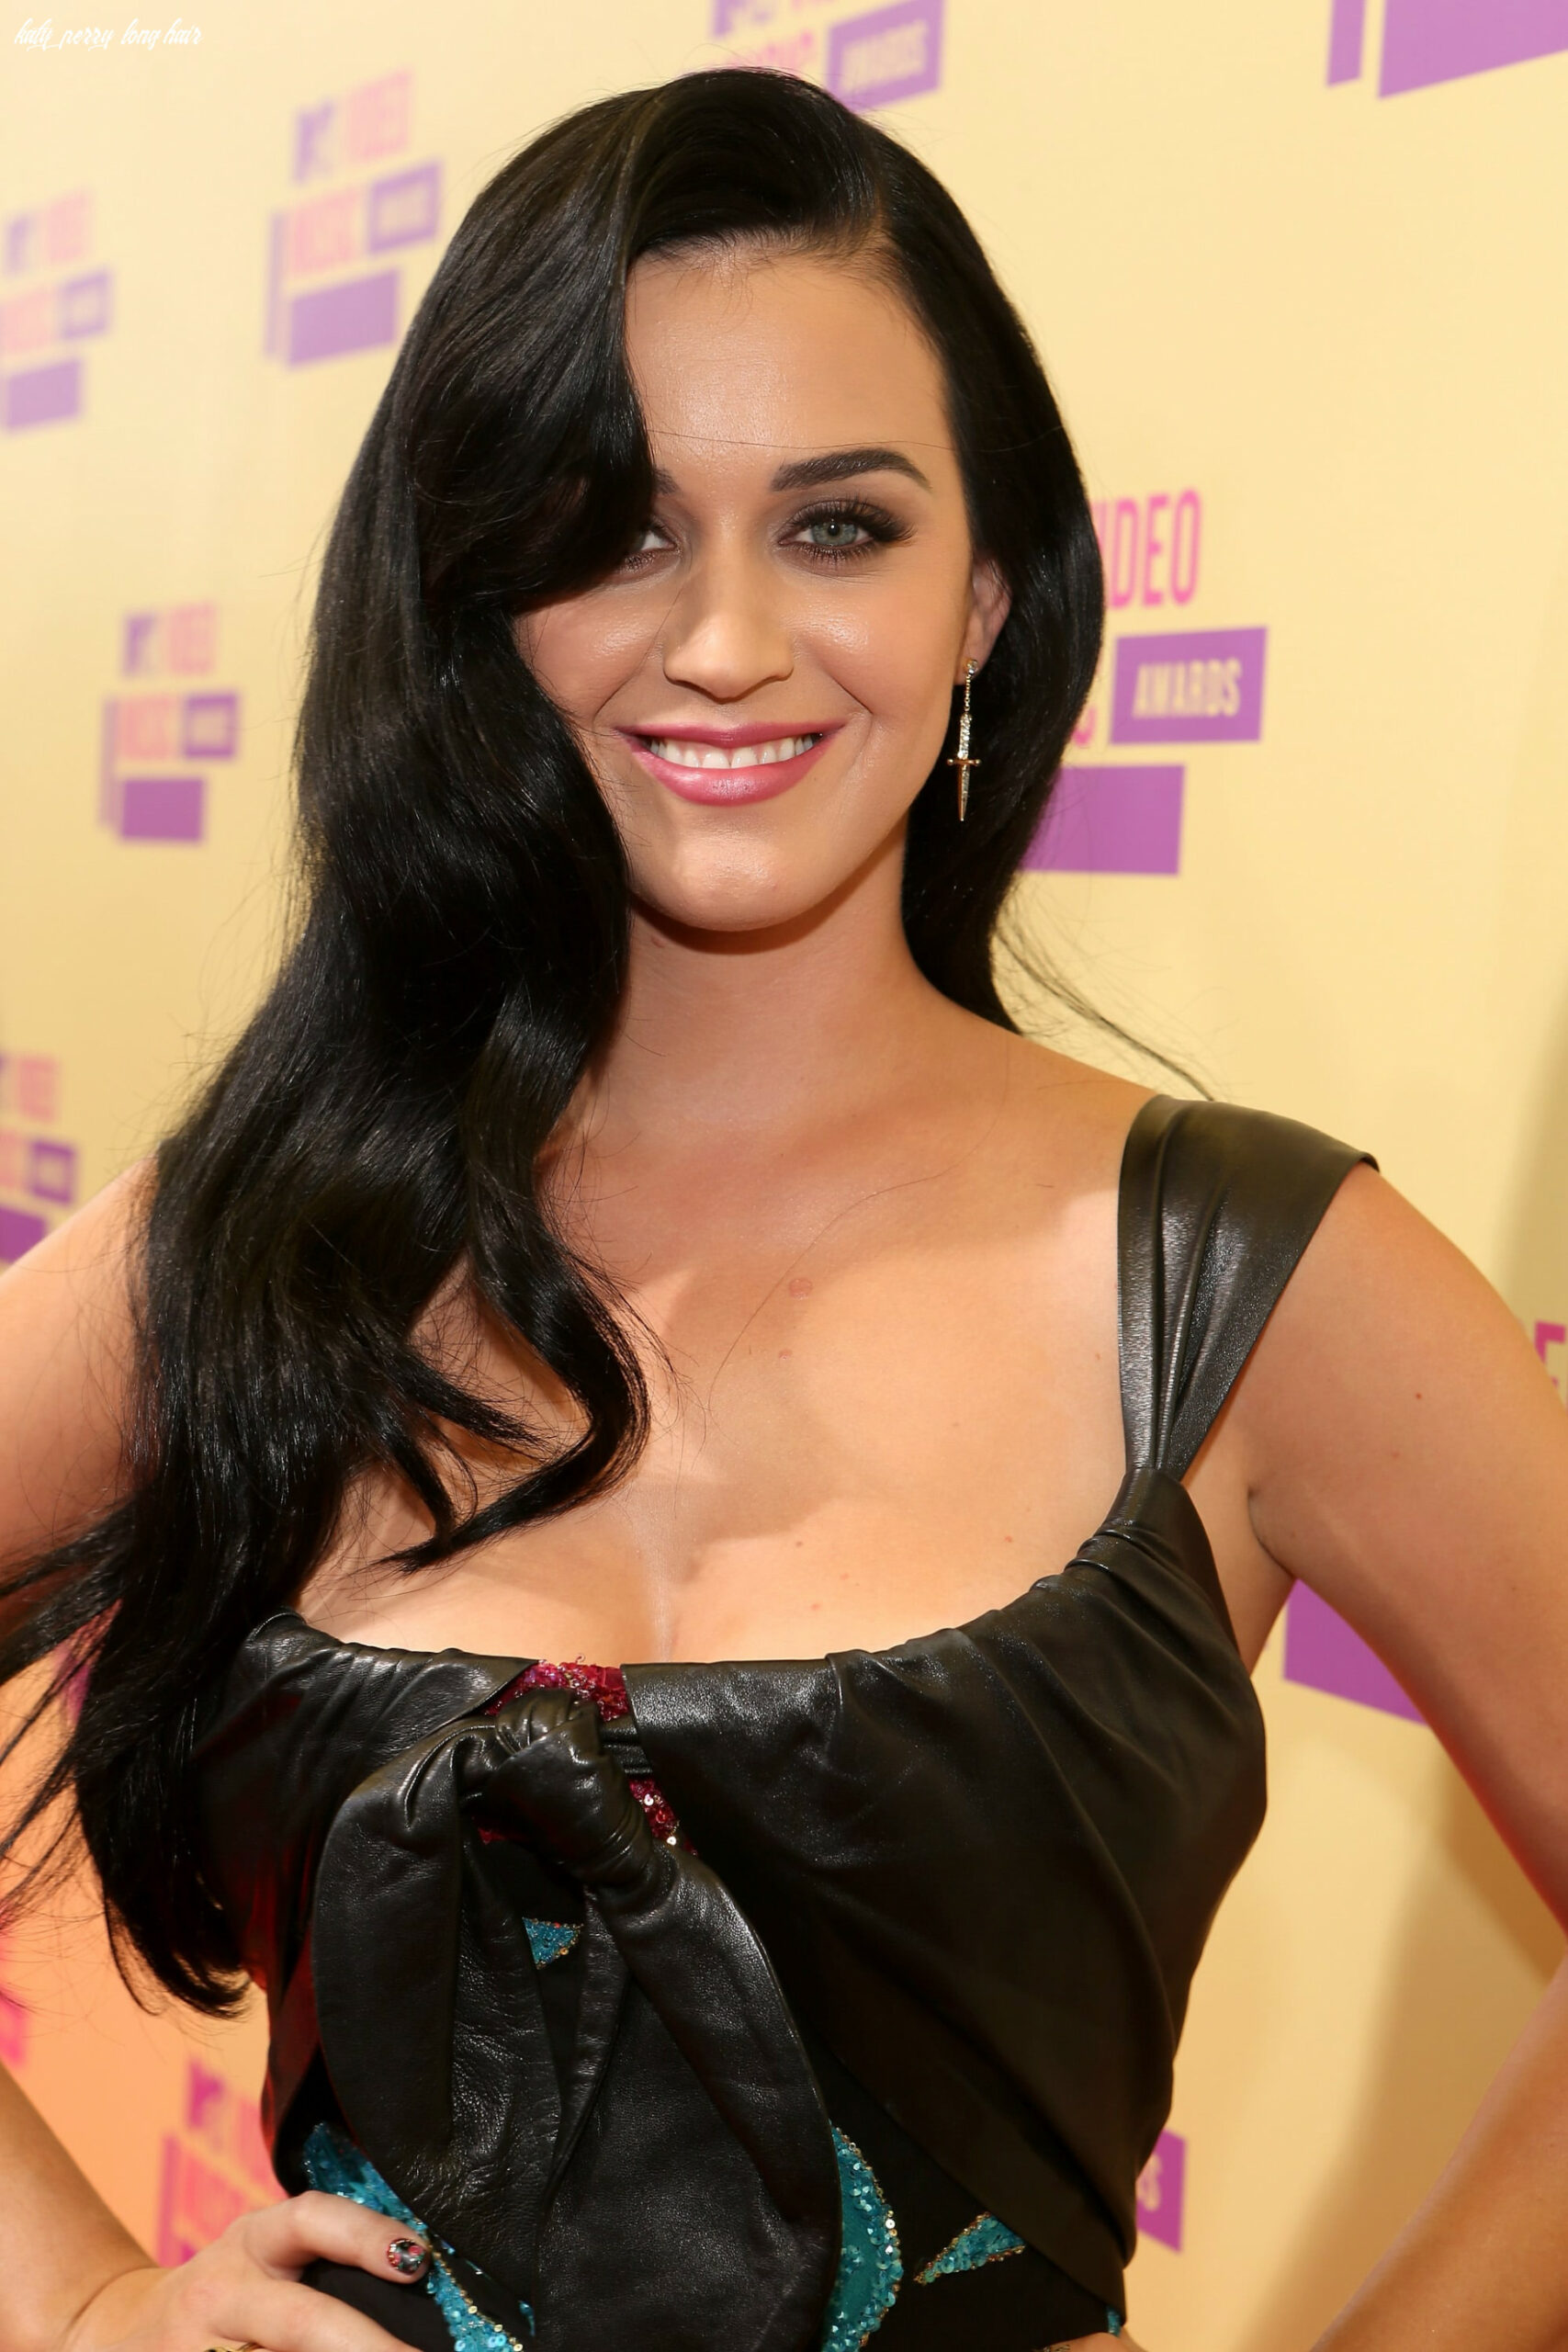 Katy perry wore her long hair down   katy perry sparkles and goes